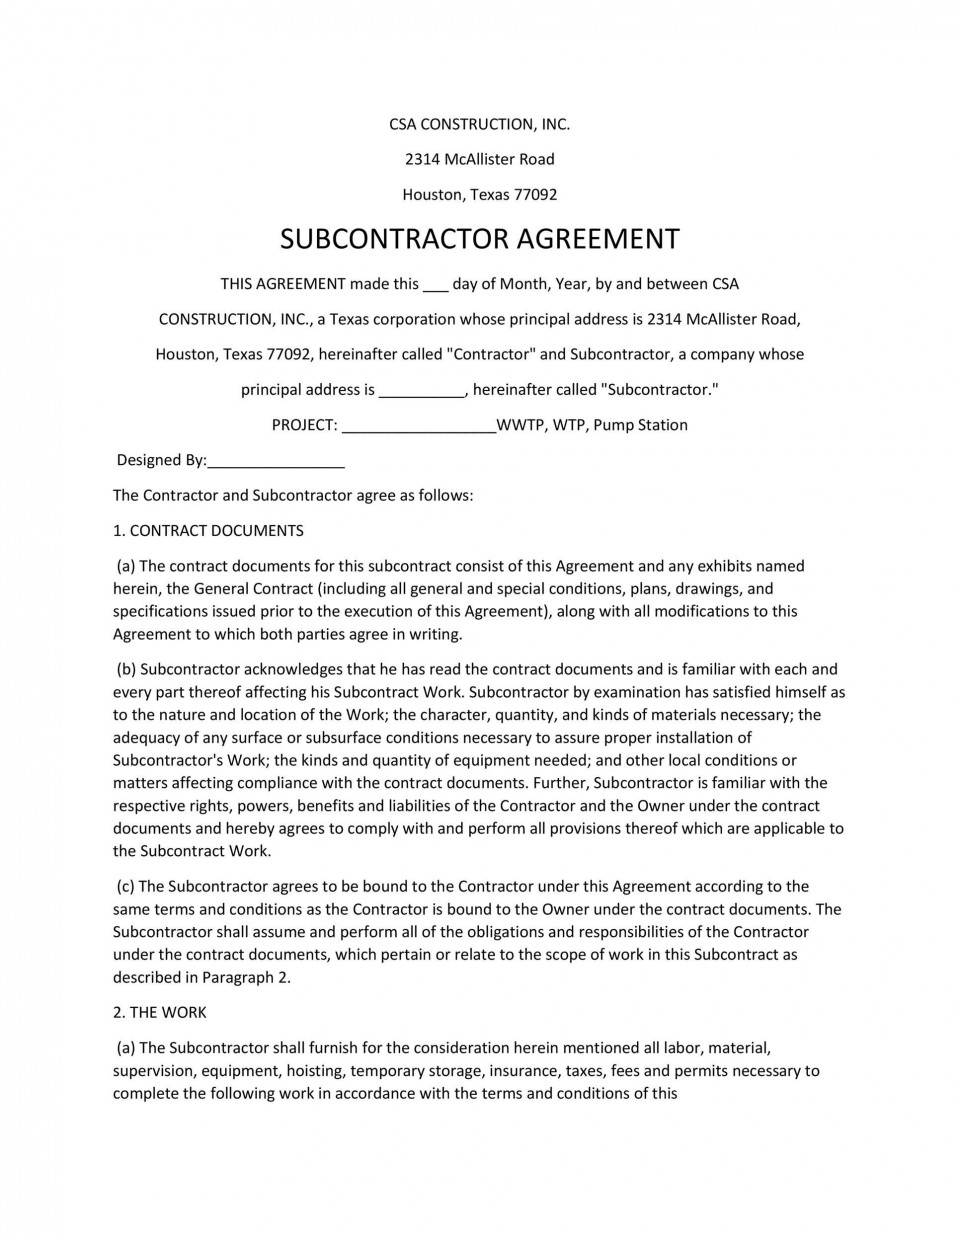 005 Simple Subcontractor Contract Template Free Example  Uk960